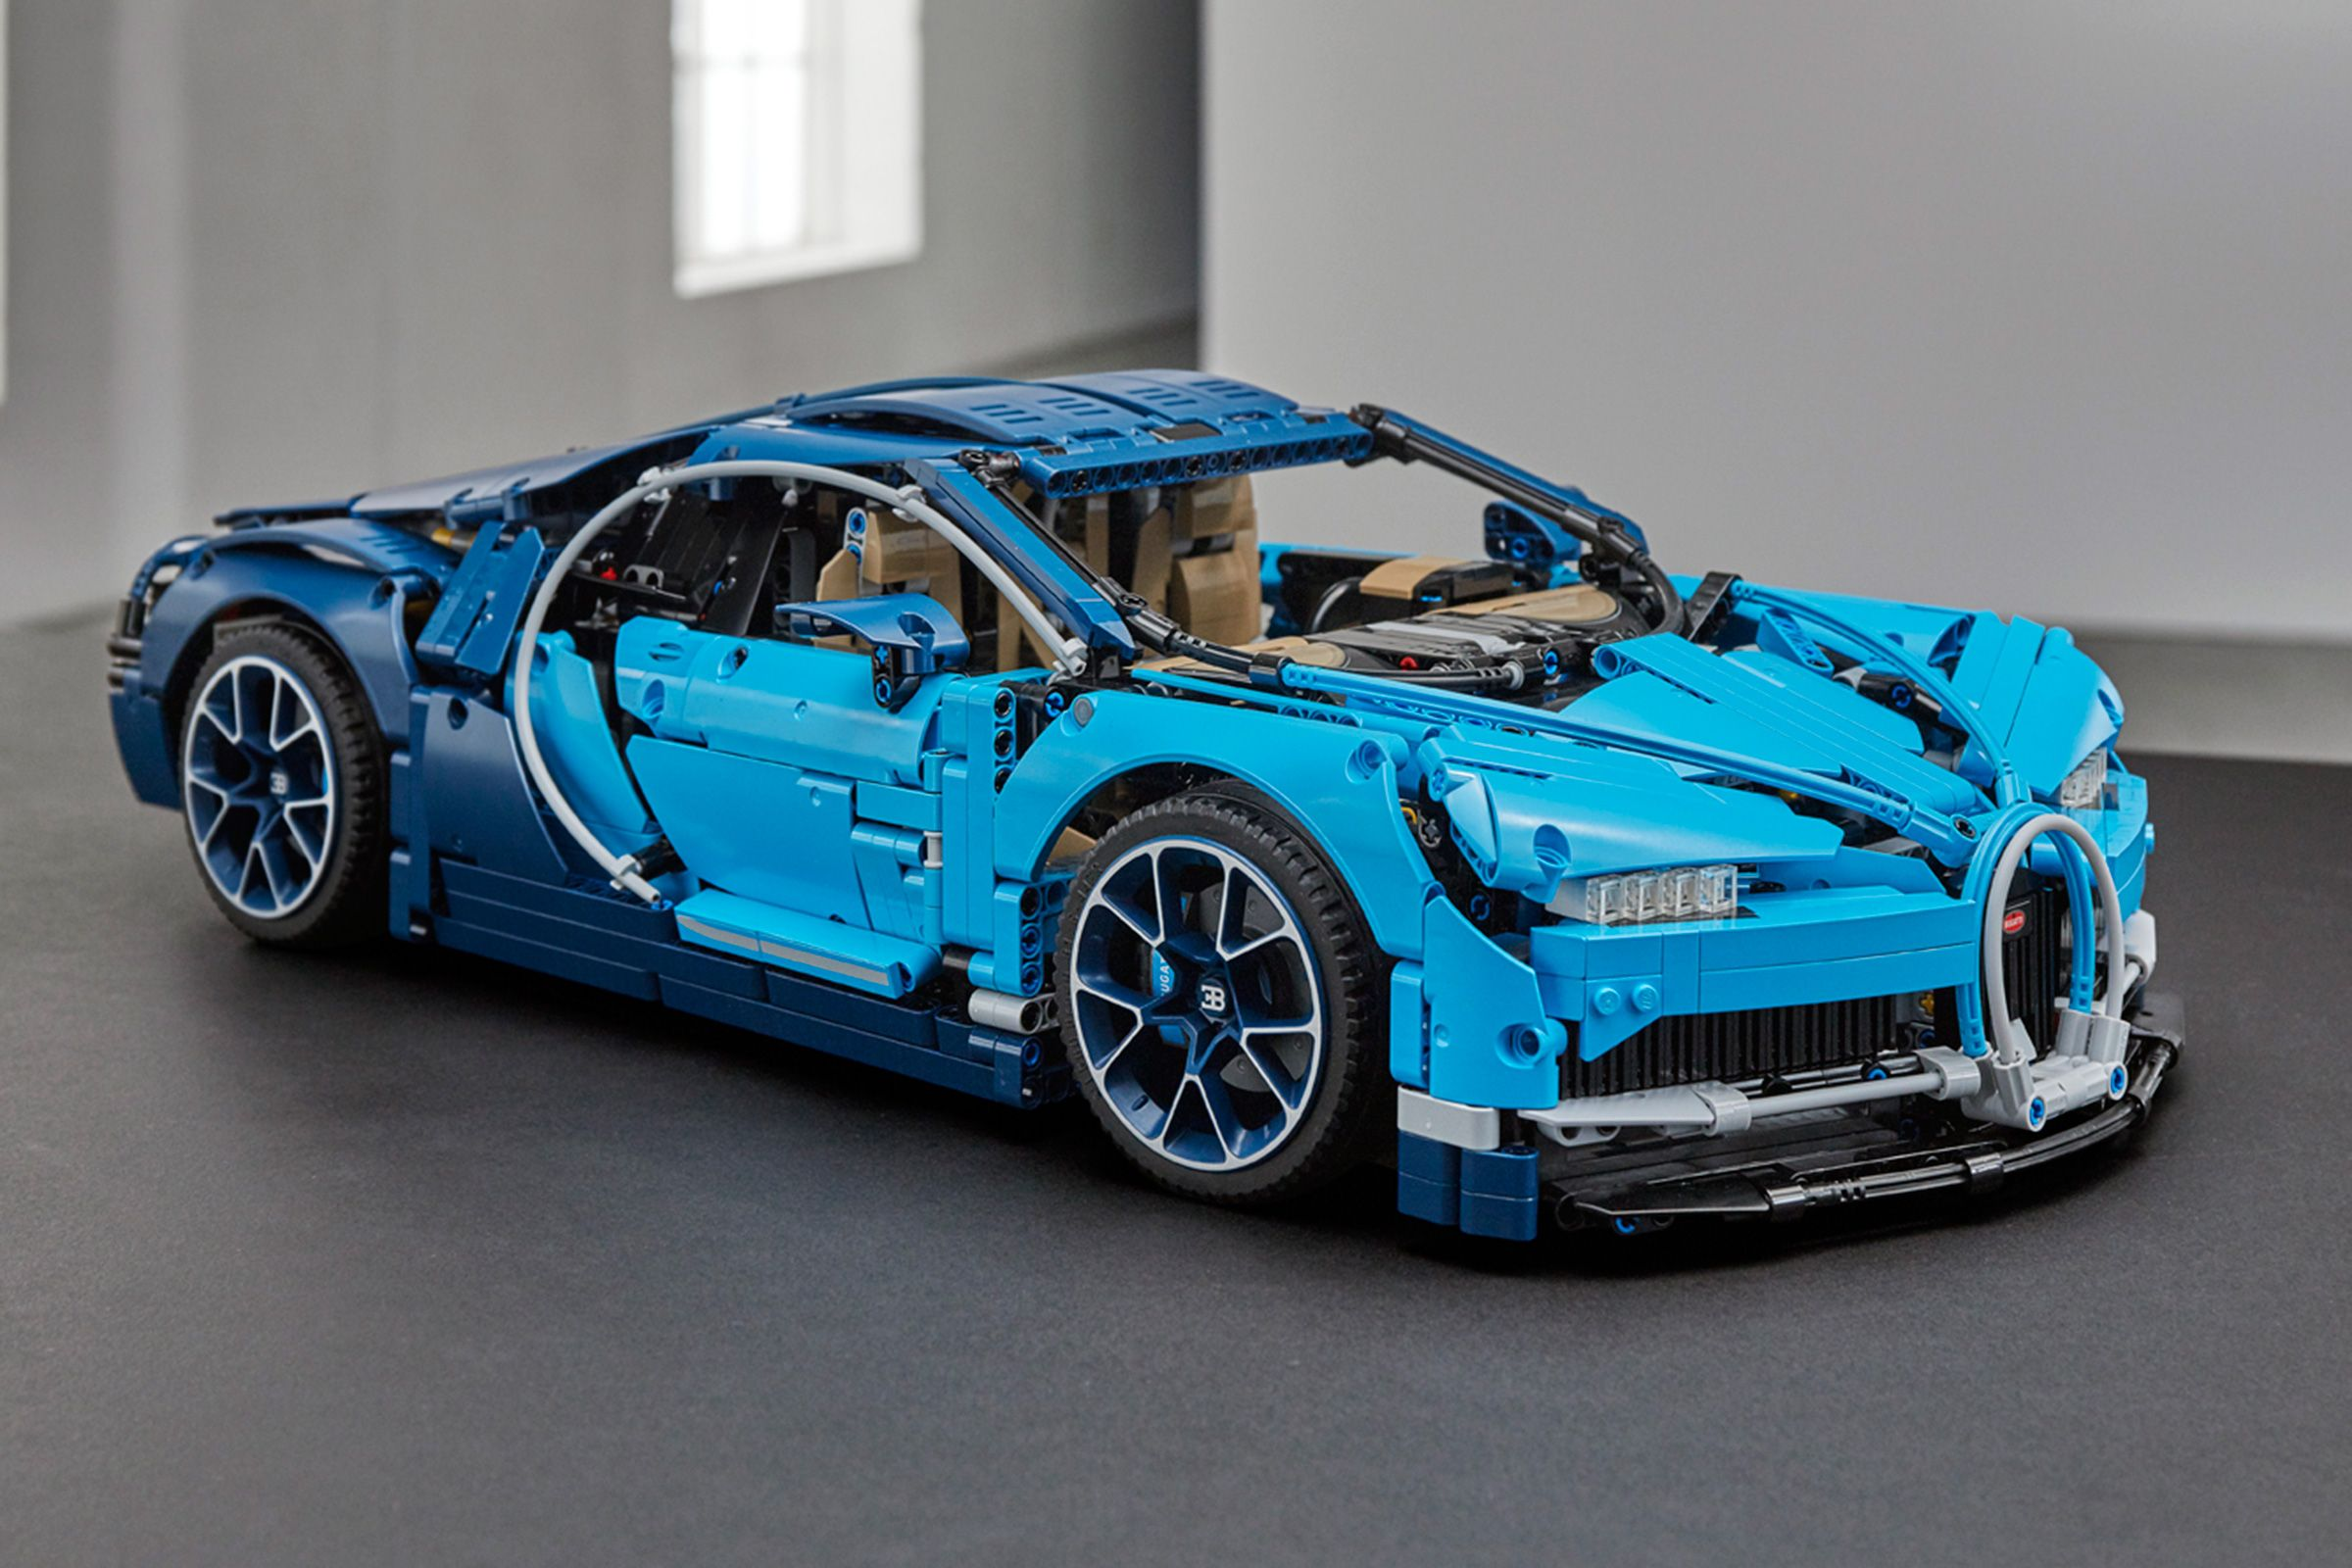 Bugatti Chiron Lego Kit Launches Pictures Lego Cars Pinterest